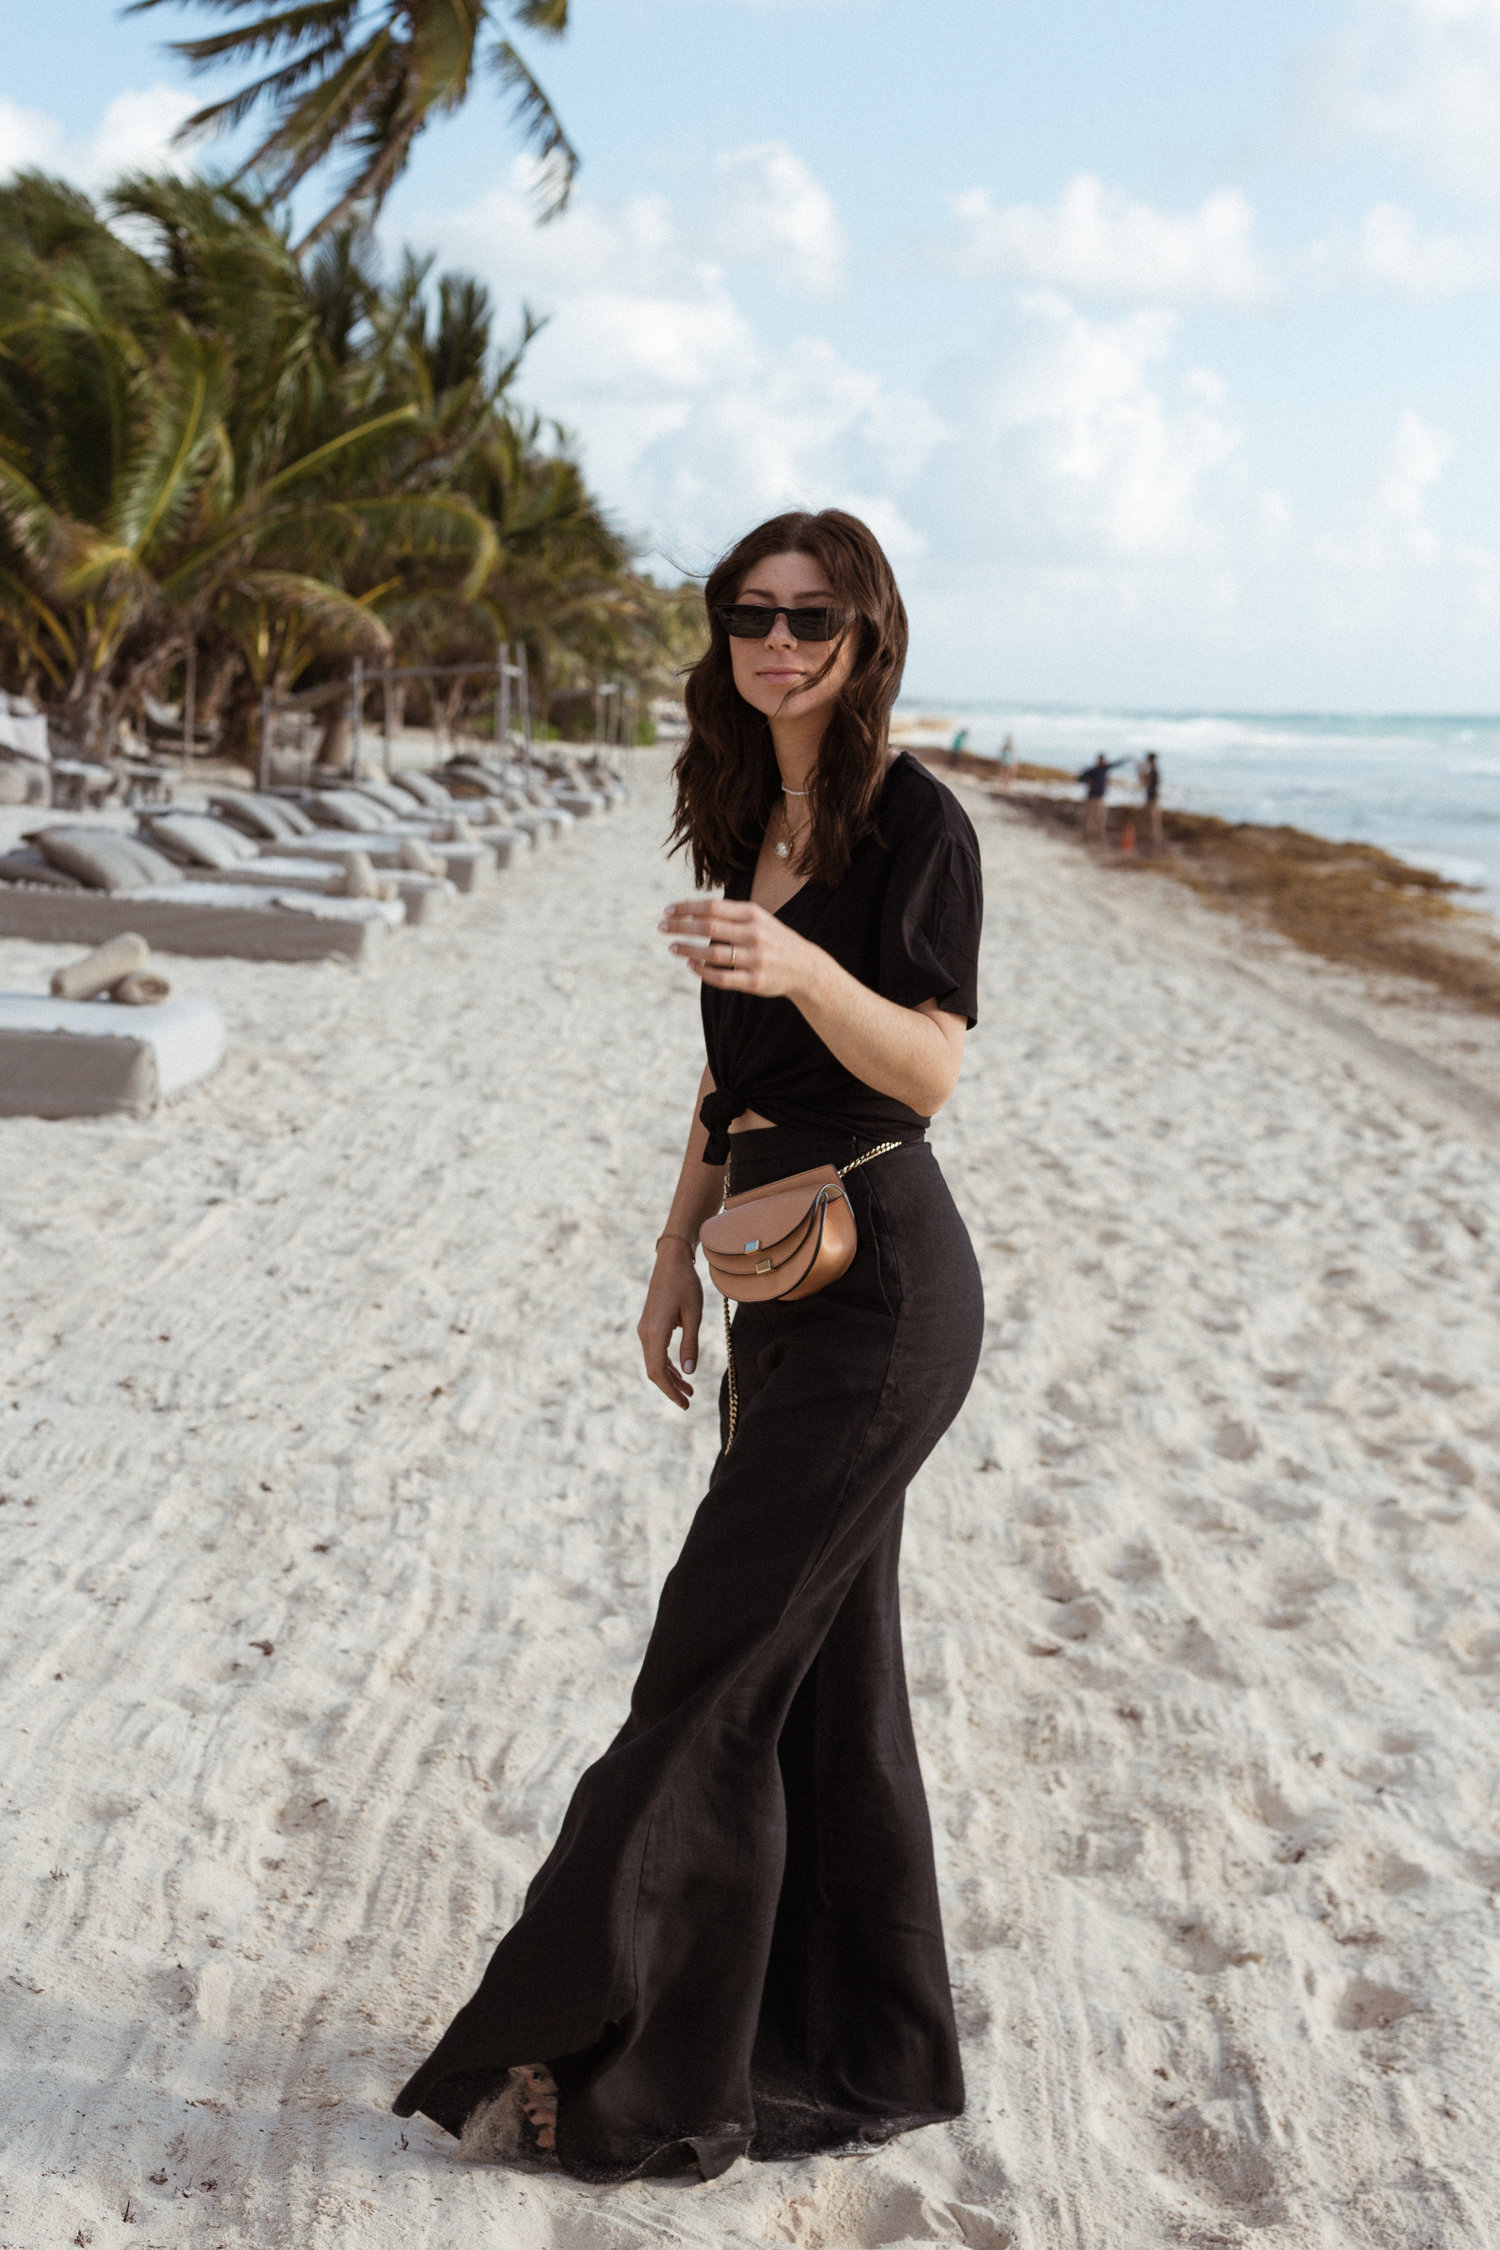 Mexico: Tulum Travel Guide - Bikinis & Passports